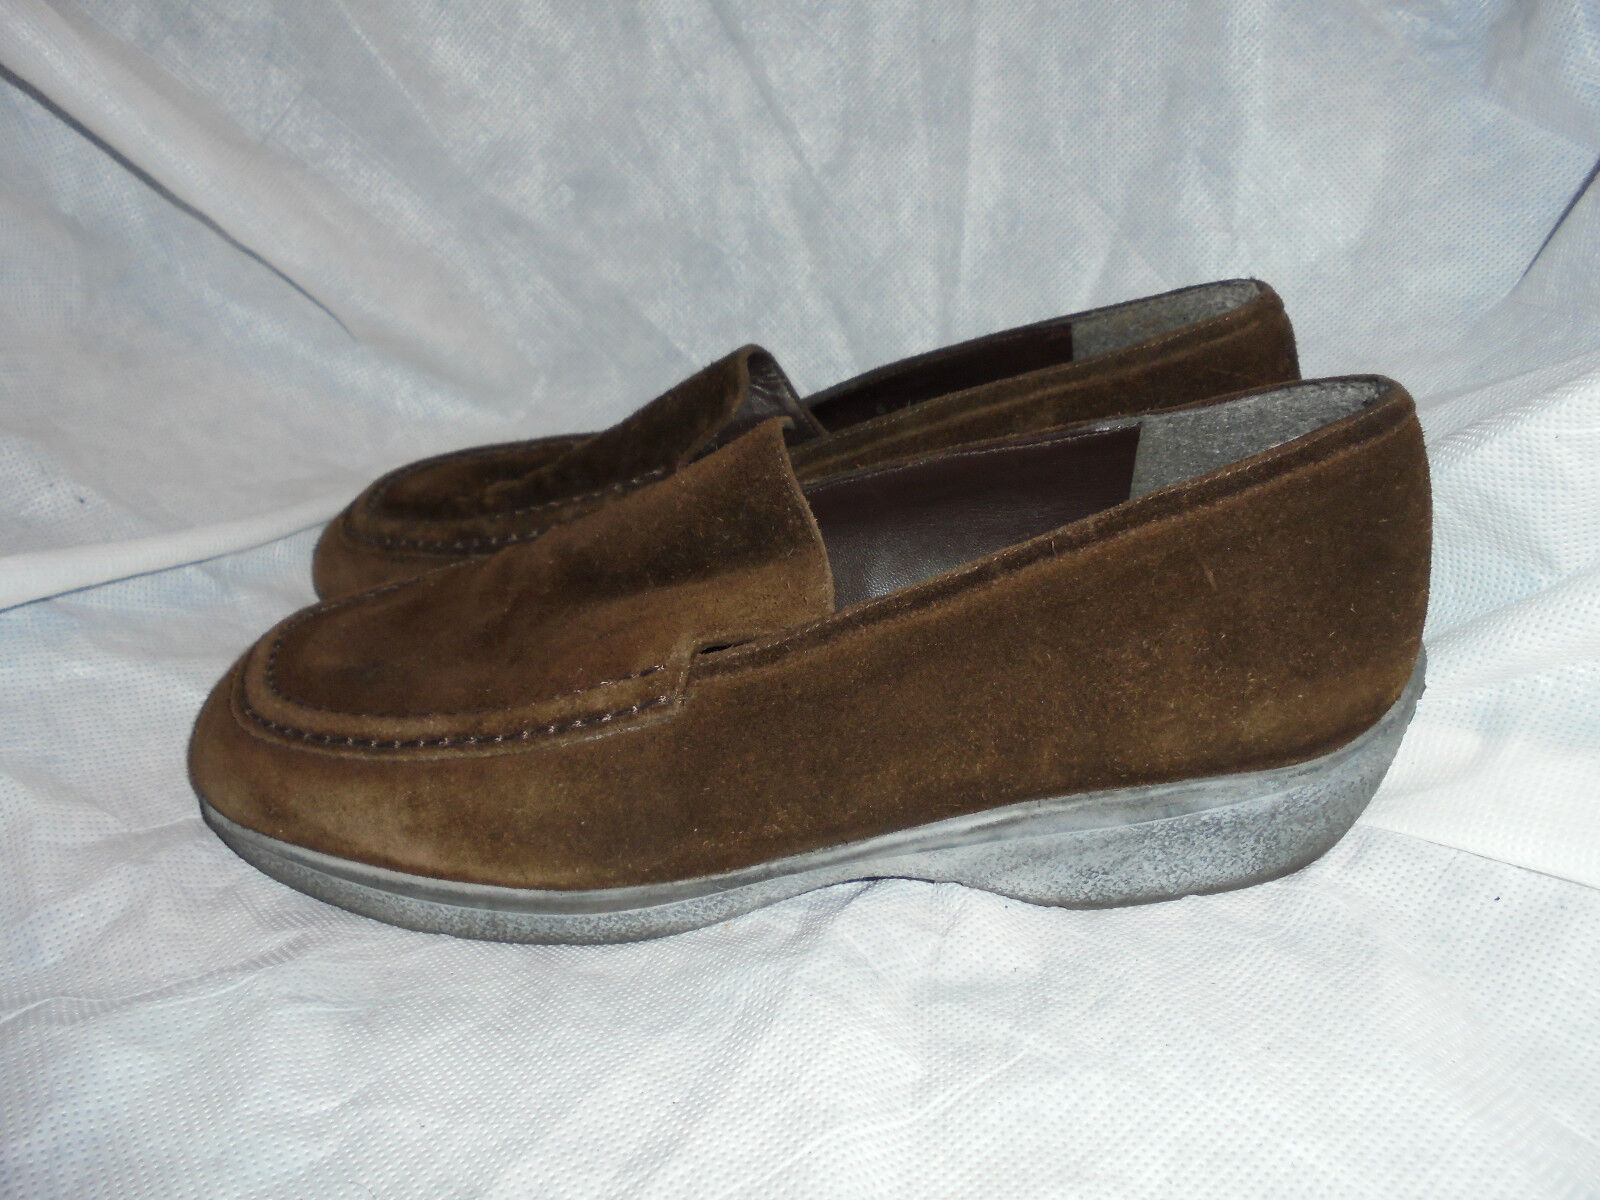 RUSSELL & BROMLEY WOMEN'S BROWN LEATHER SLIP ON SHOES SIZE US 8.5